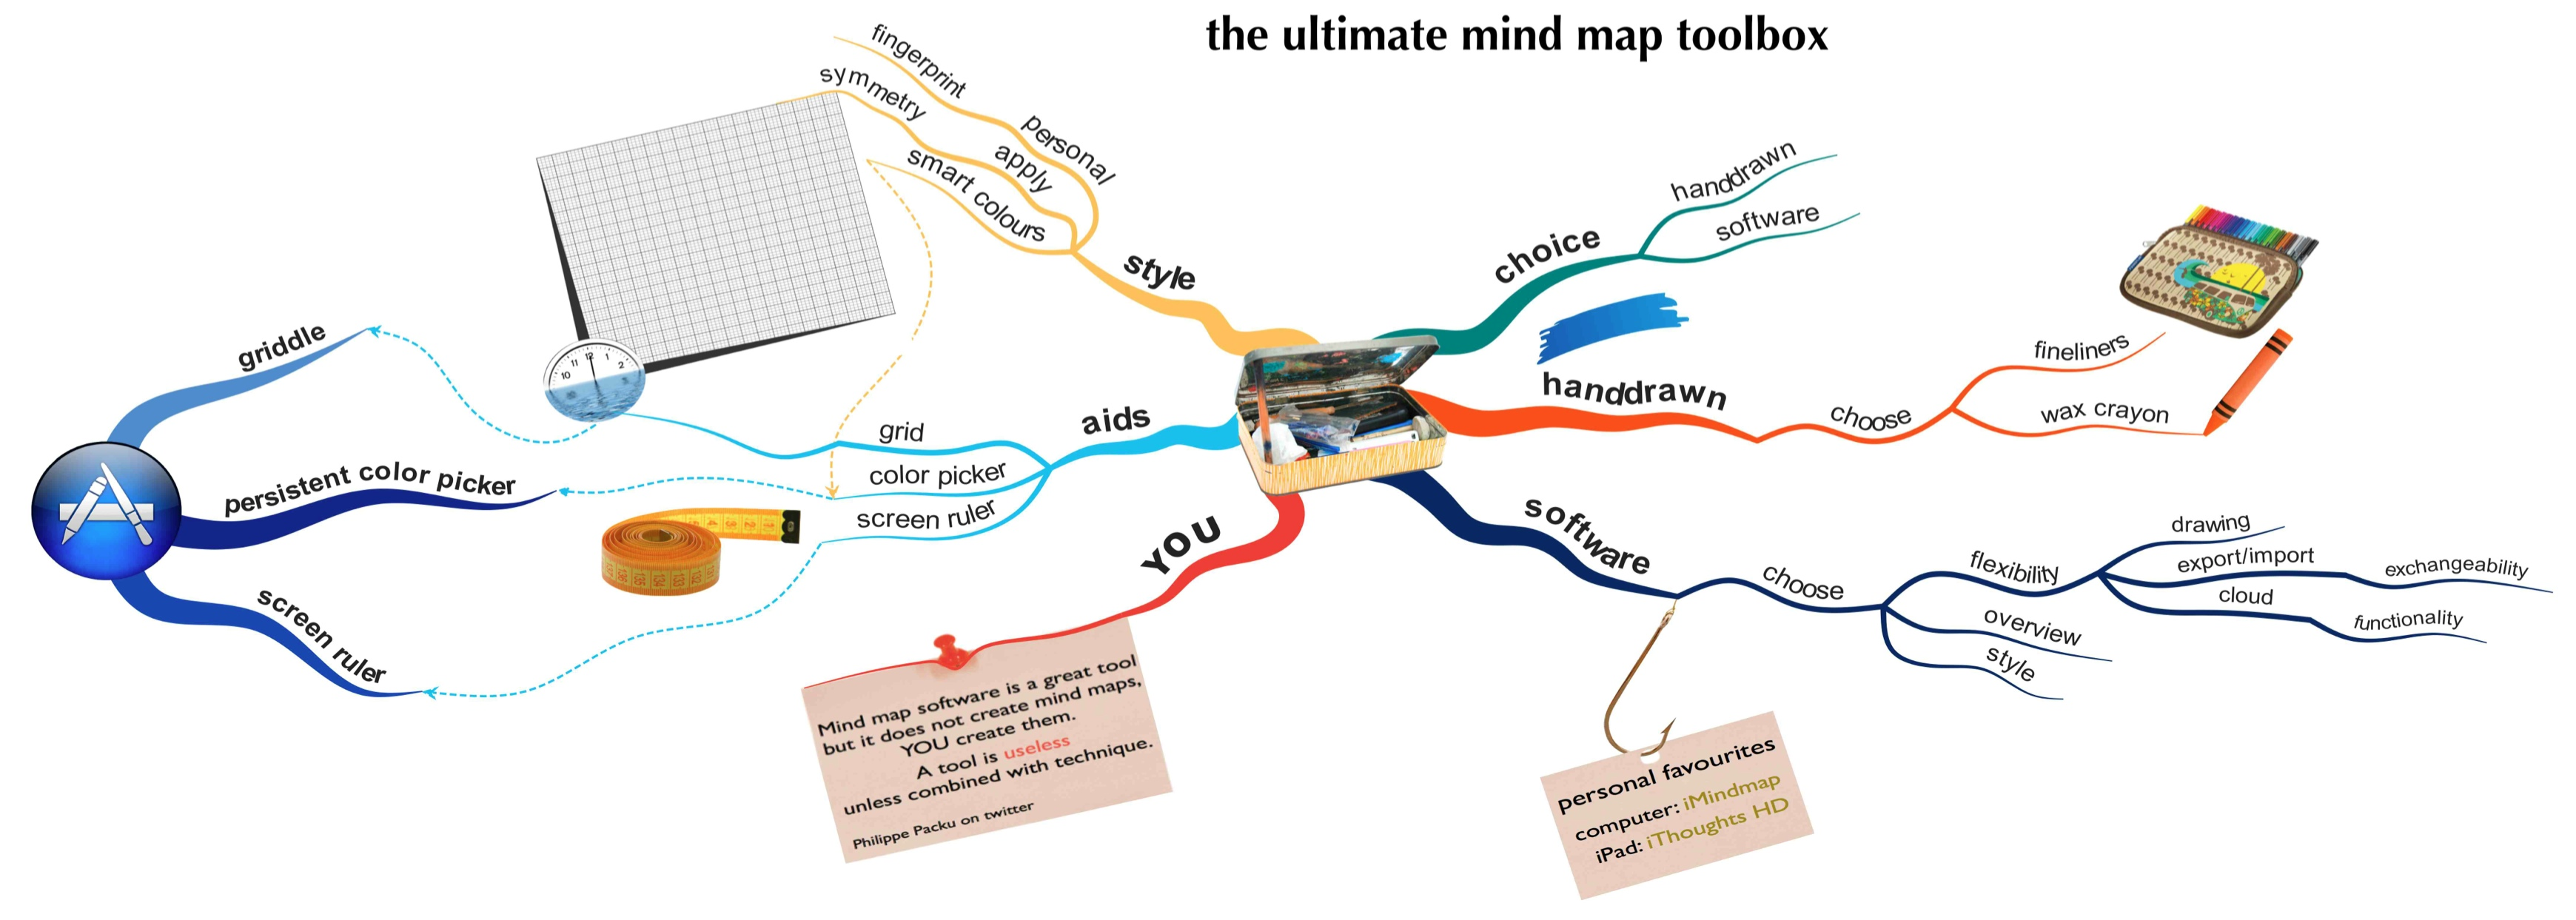 google maps ruler with How To Make A Perfect Mind Map on How To Make A Perfect Mind Map furthermore G 6l0gbanbardkfg0c88pqua0 together with Mount Gerizim as well Details besides Google 20chrome 202014 20free.